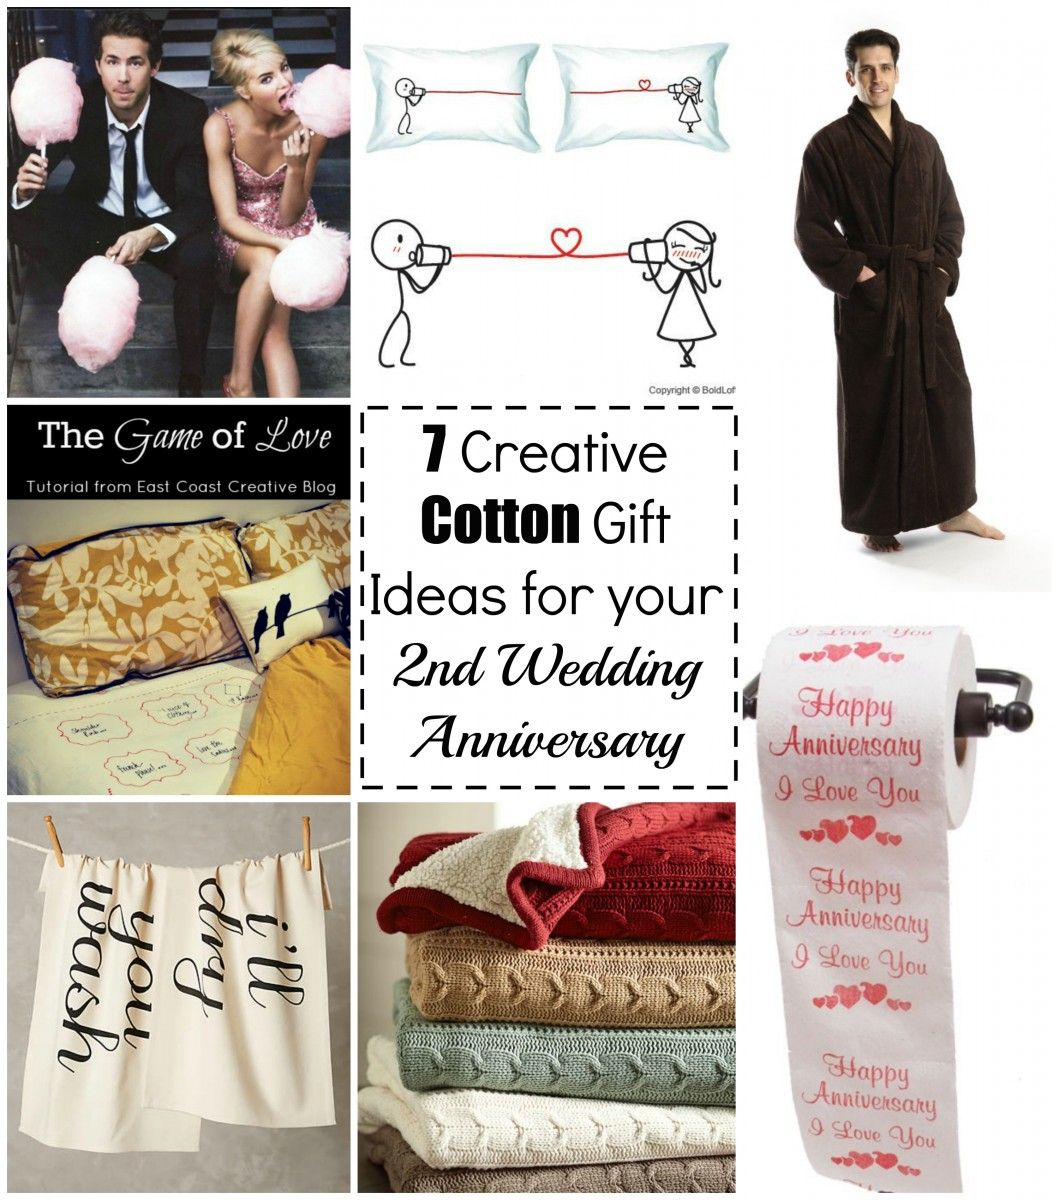 Gifts For A Second Wedding: 7 Cotton Gift Ideas For Your 2nd Wedding Anniversary